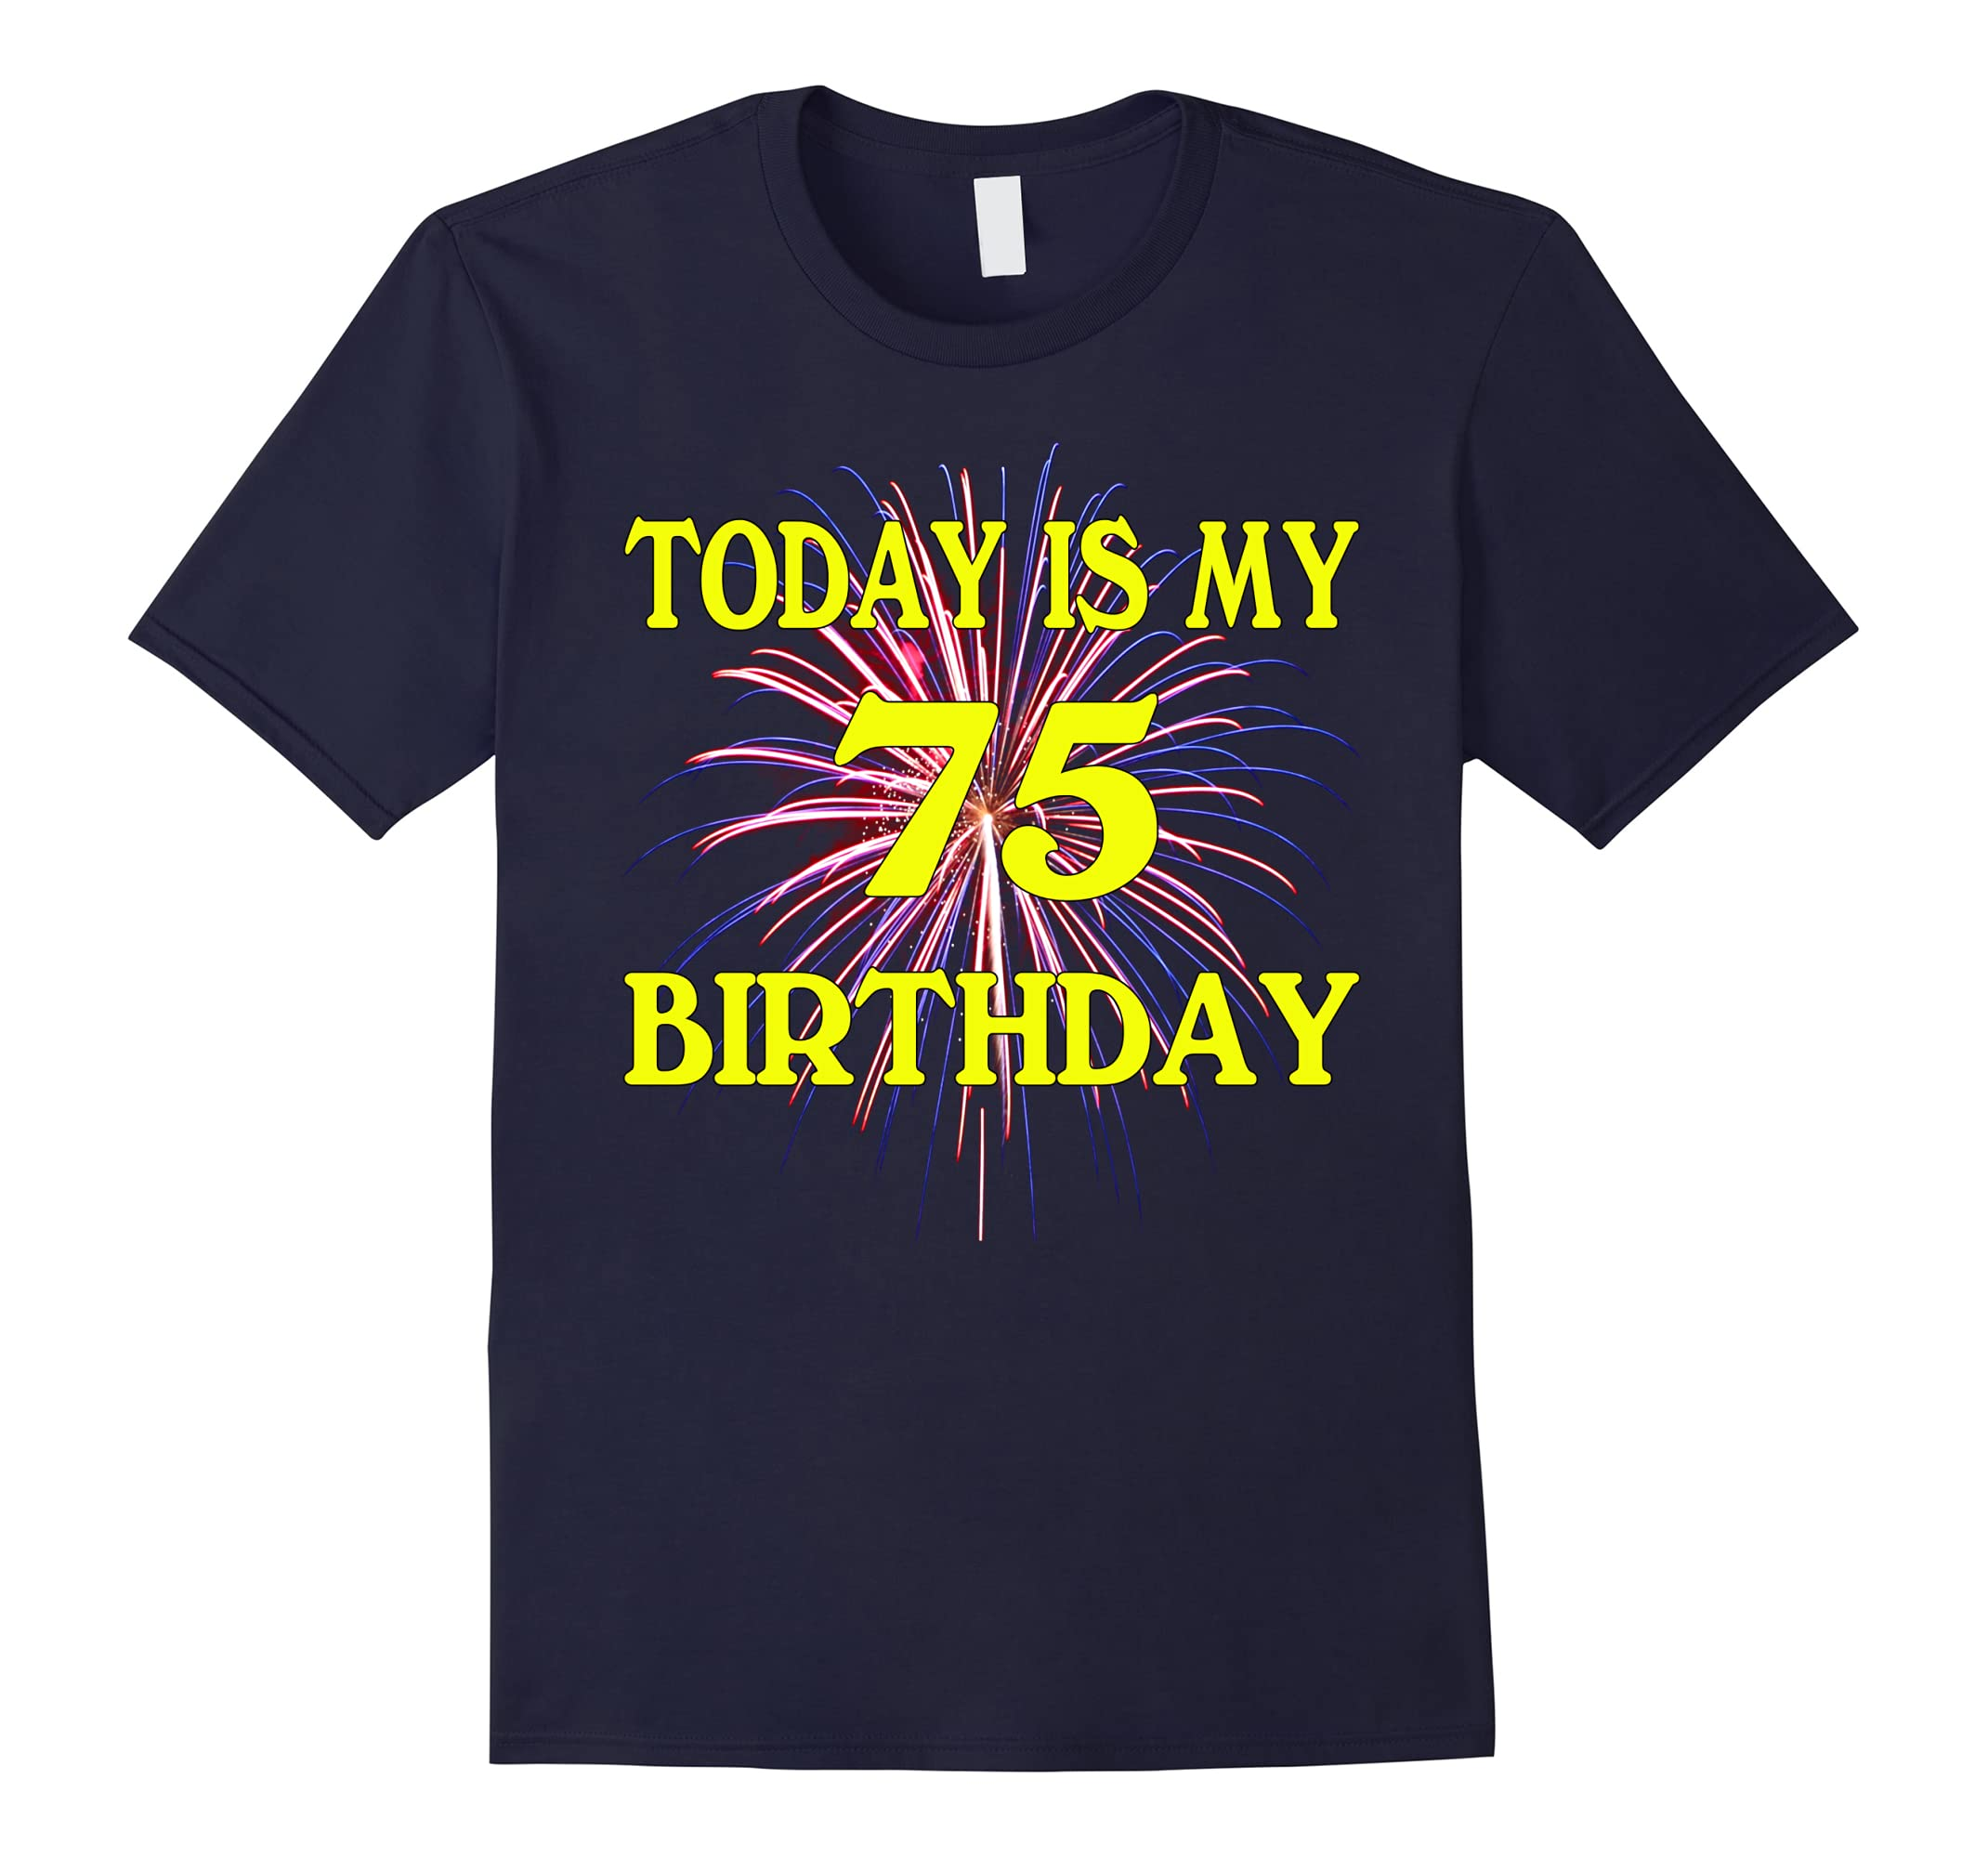 Today Is My 75th Birthday Shirt 75 Years Old 75th Birthday-ah my shirt one gift